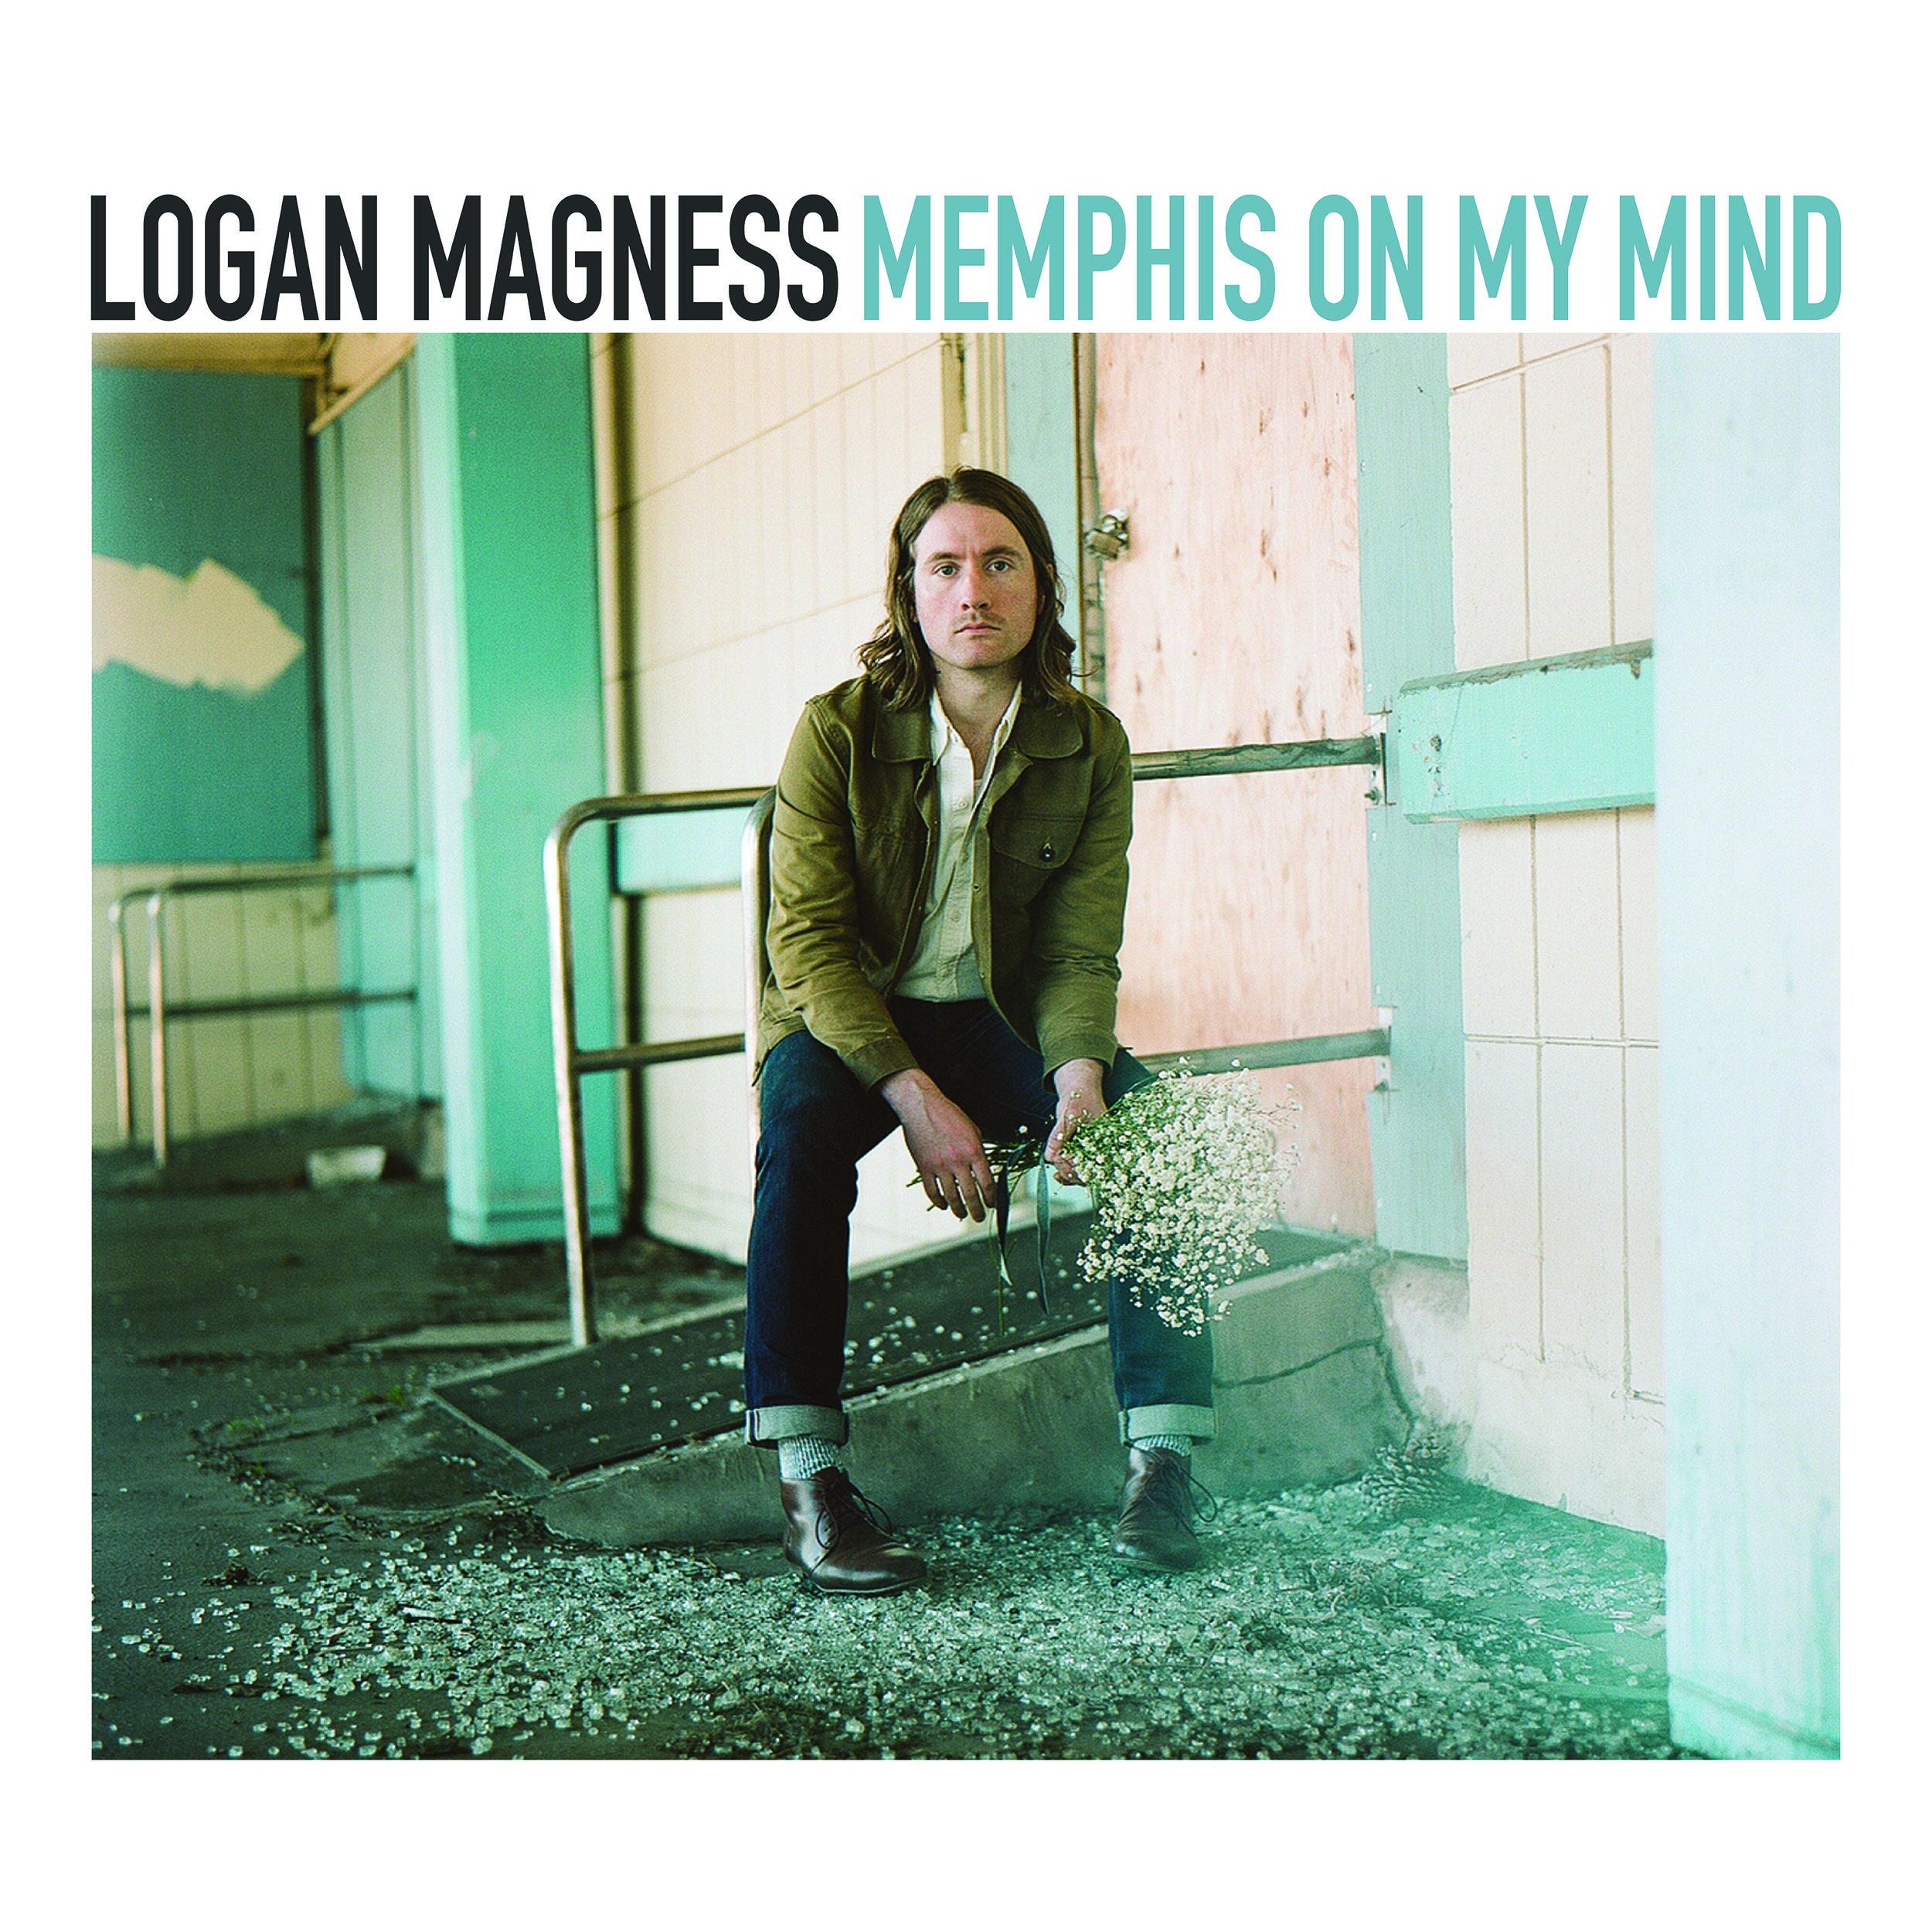 MEMPHIS ON MY MIND - LOGAN MAGNESSMEMPHIS ON MY MIND (LP)RELEASE - MARCH 23, 2018Don't Leave Me AloneTrue LoveBed of NailsOn Certain DaysMelt Like WaxThin Red LineSomeplace ElseAnother Leaving SongThanks For Choosing HeartbreakLornaMemphis On My Mind